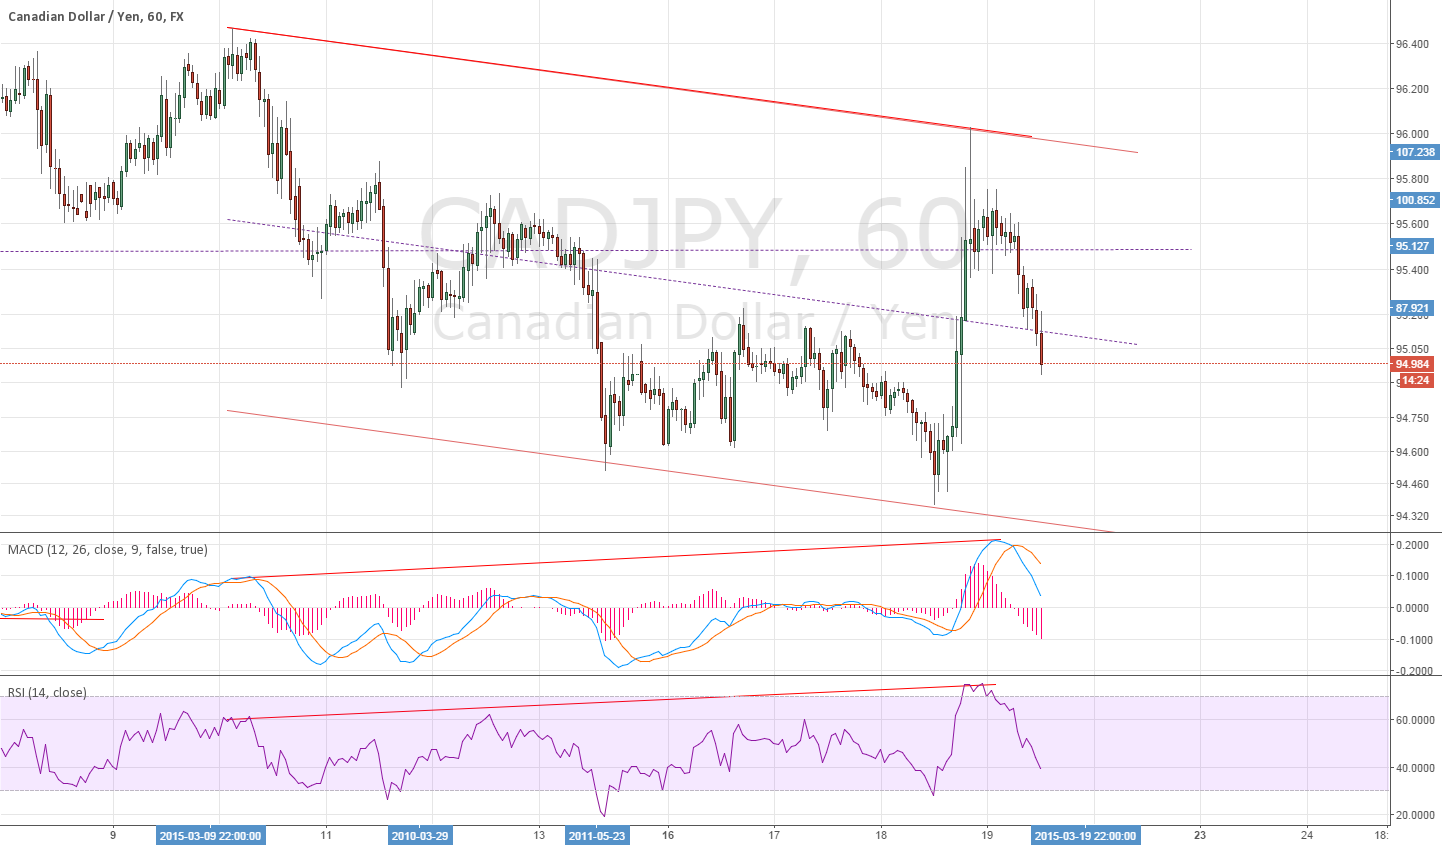 1H for CADJPY divergence